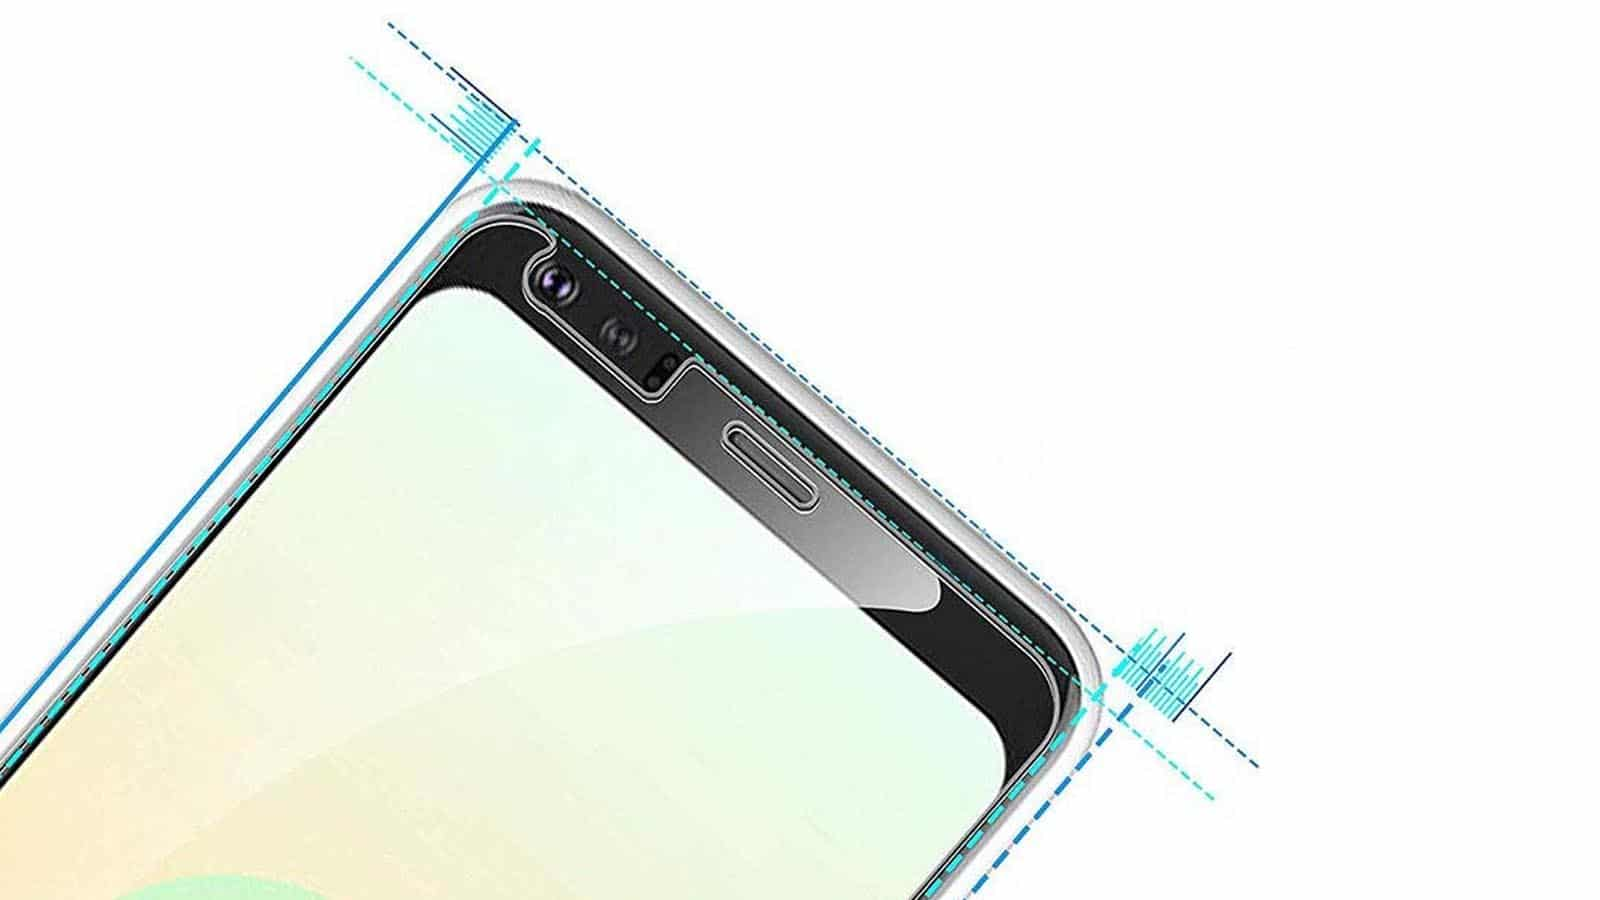 screen protector on phone